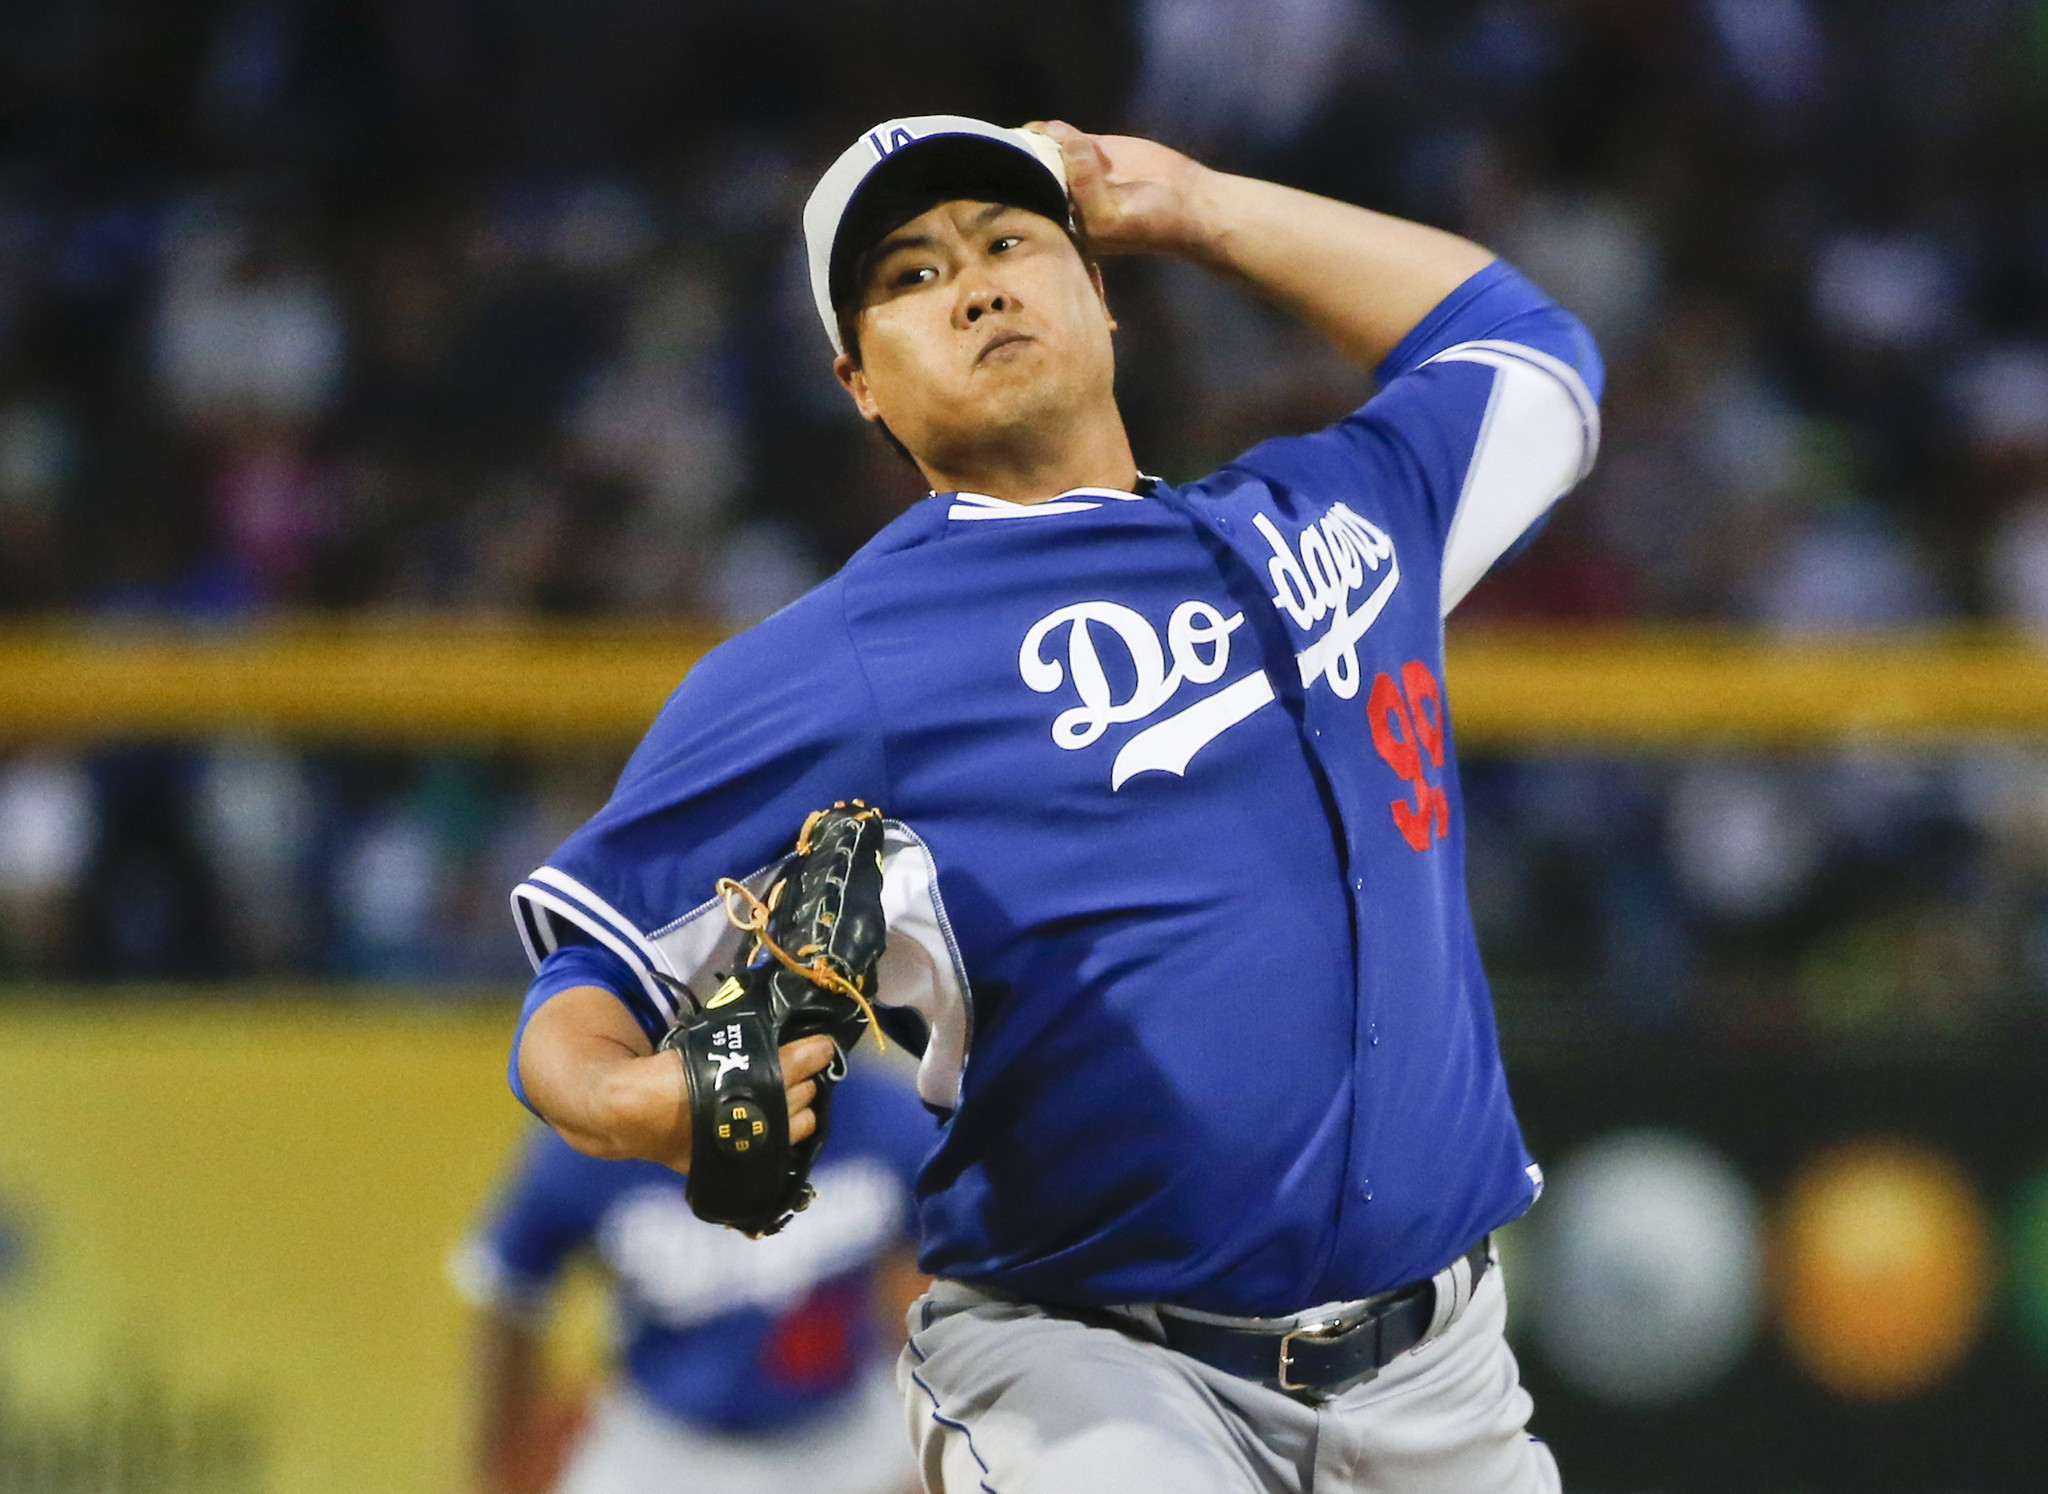 La-sp-dn-dodgers-uneventful-spring-roster-20160205